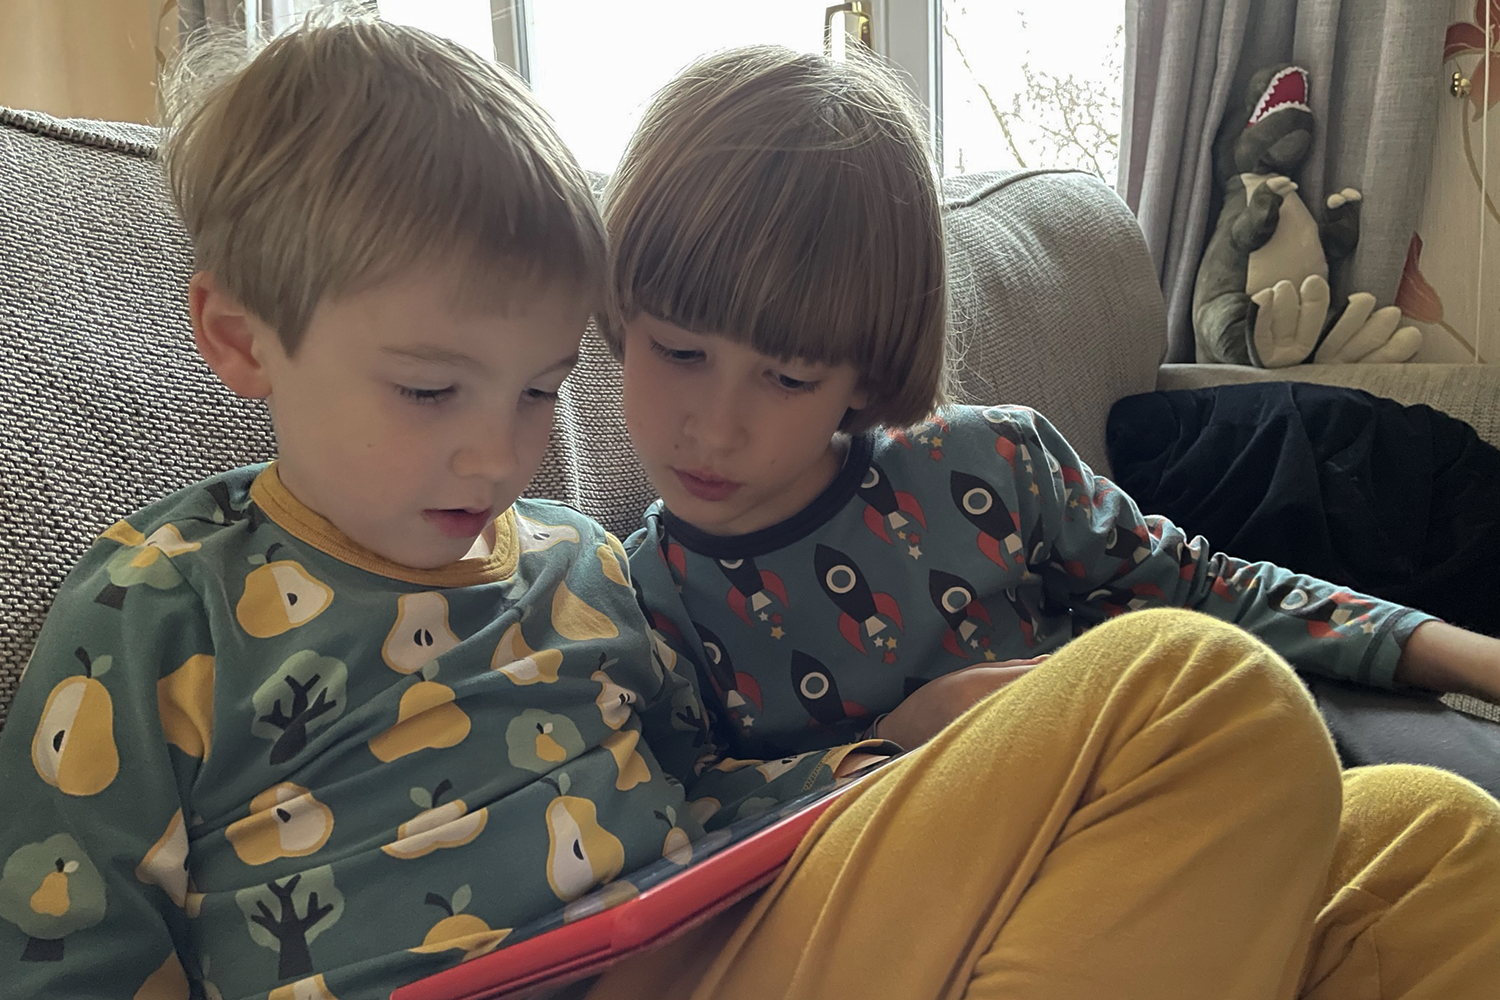 Toby and Gabe playing together on their tablet